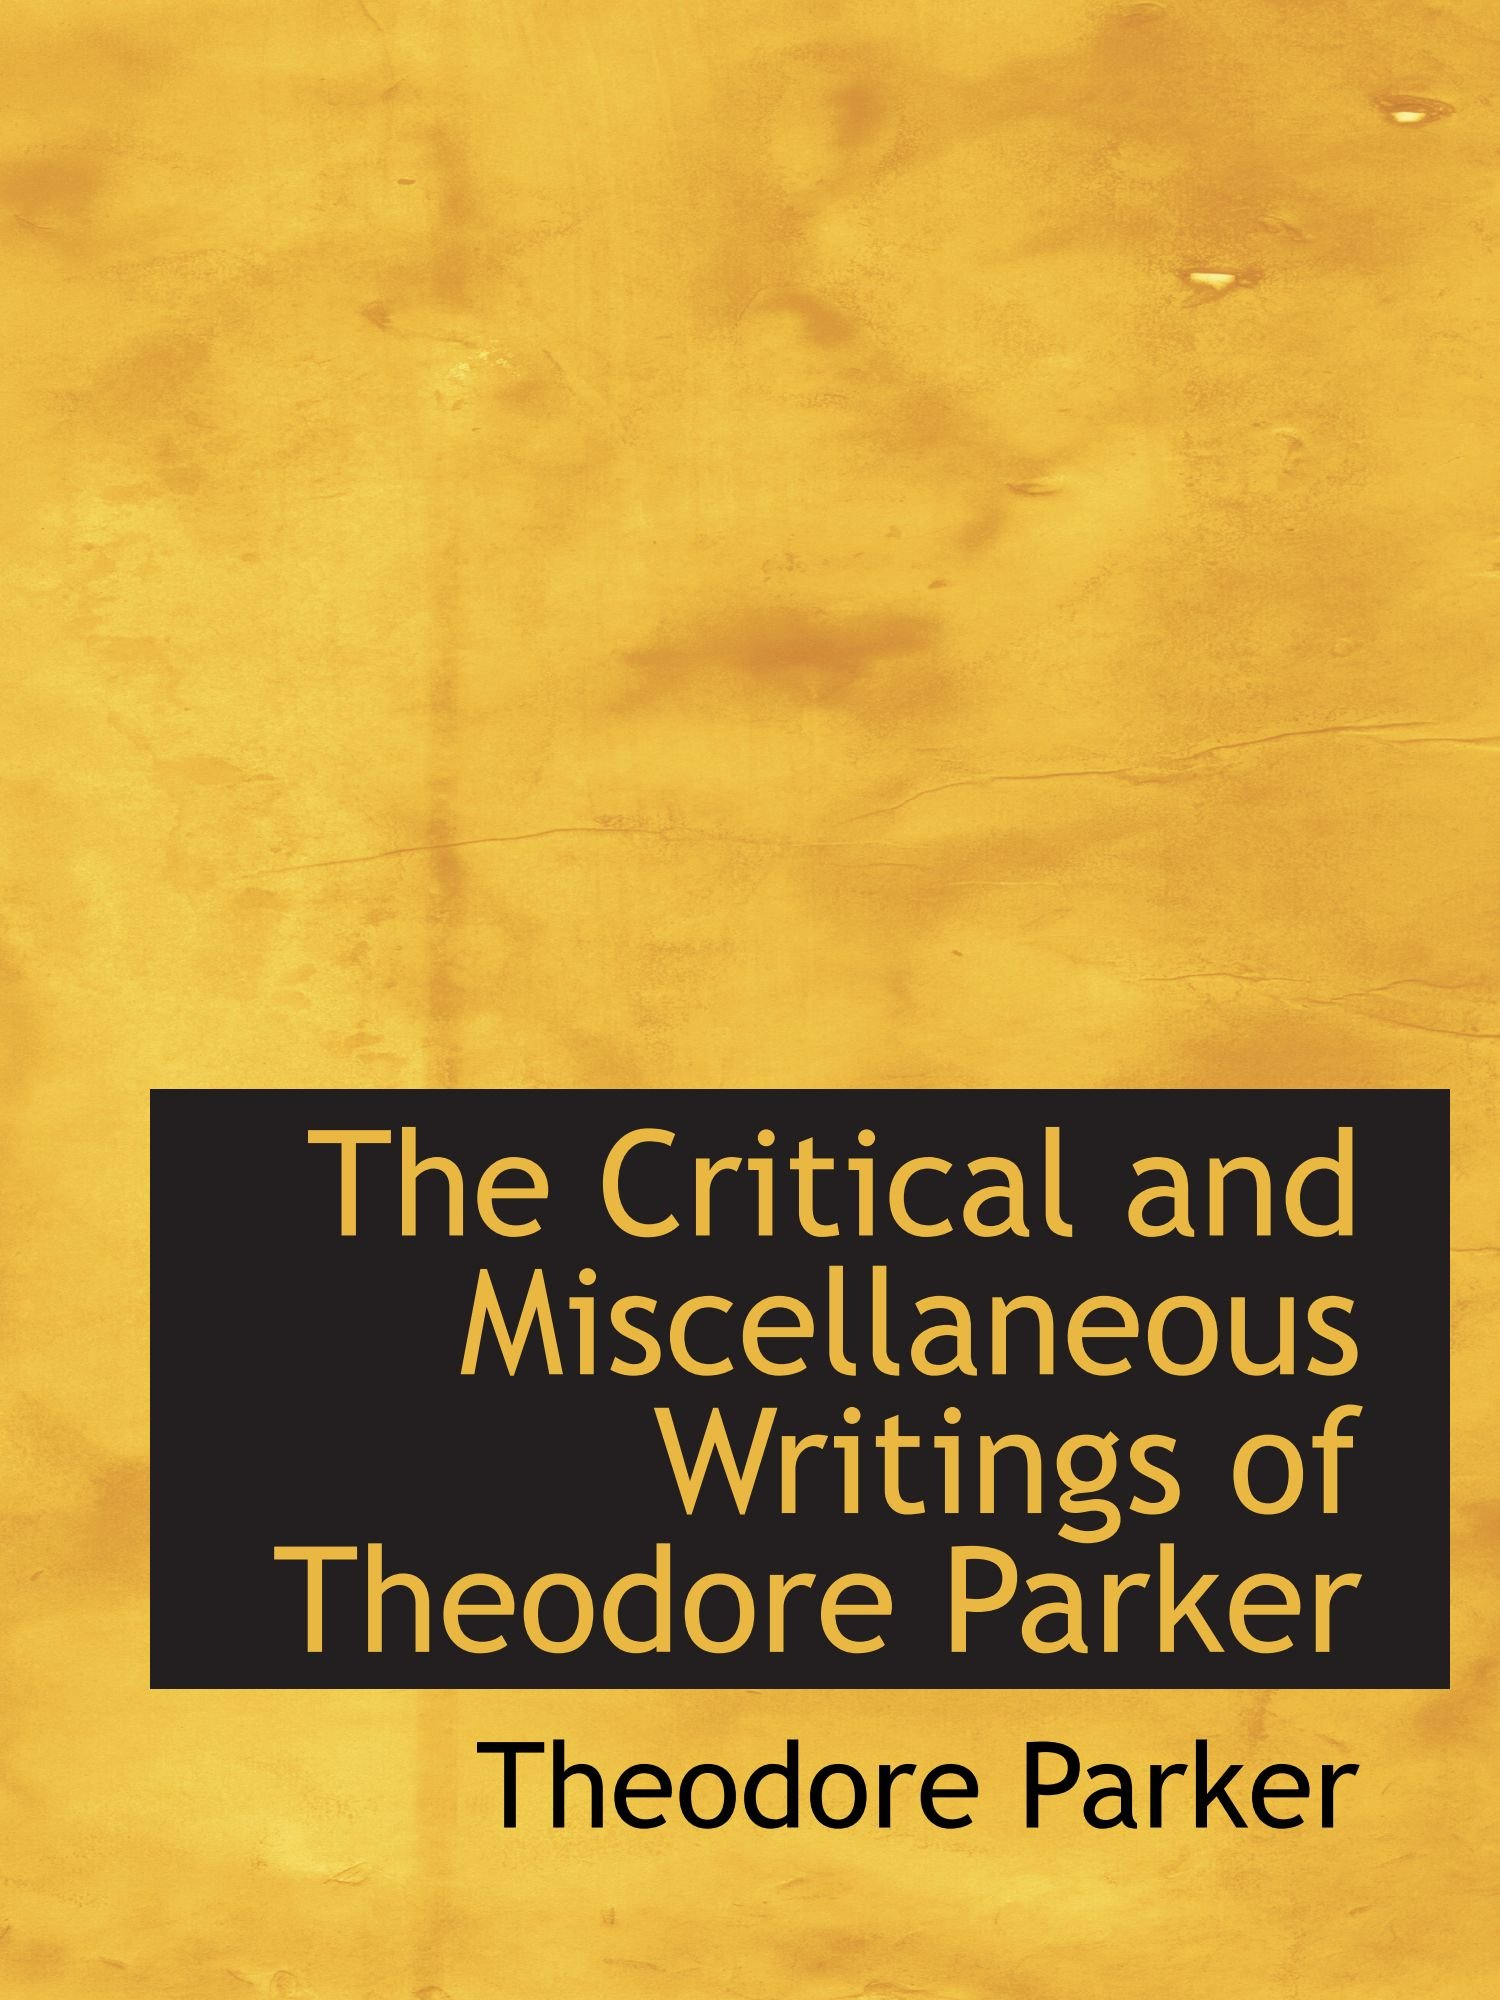 Download The Critical and Miscellaneous Writings of Theodore Parker PDF